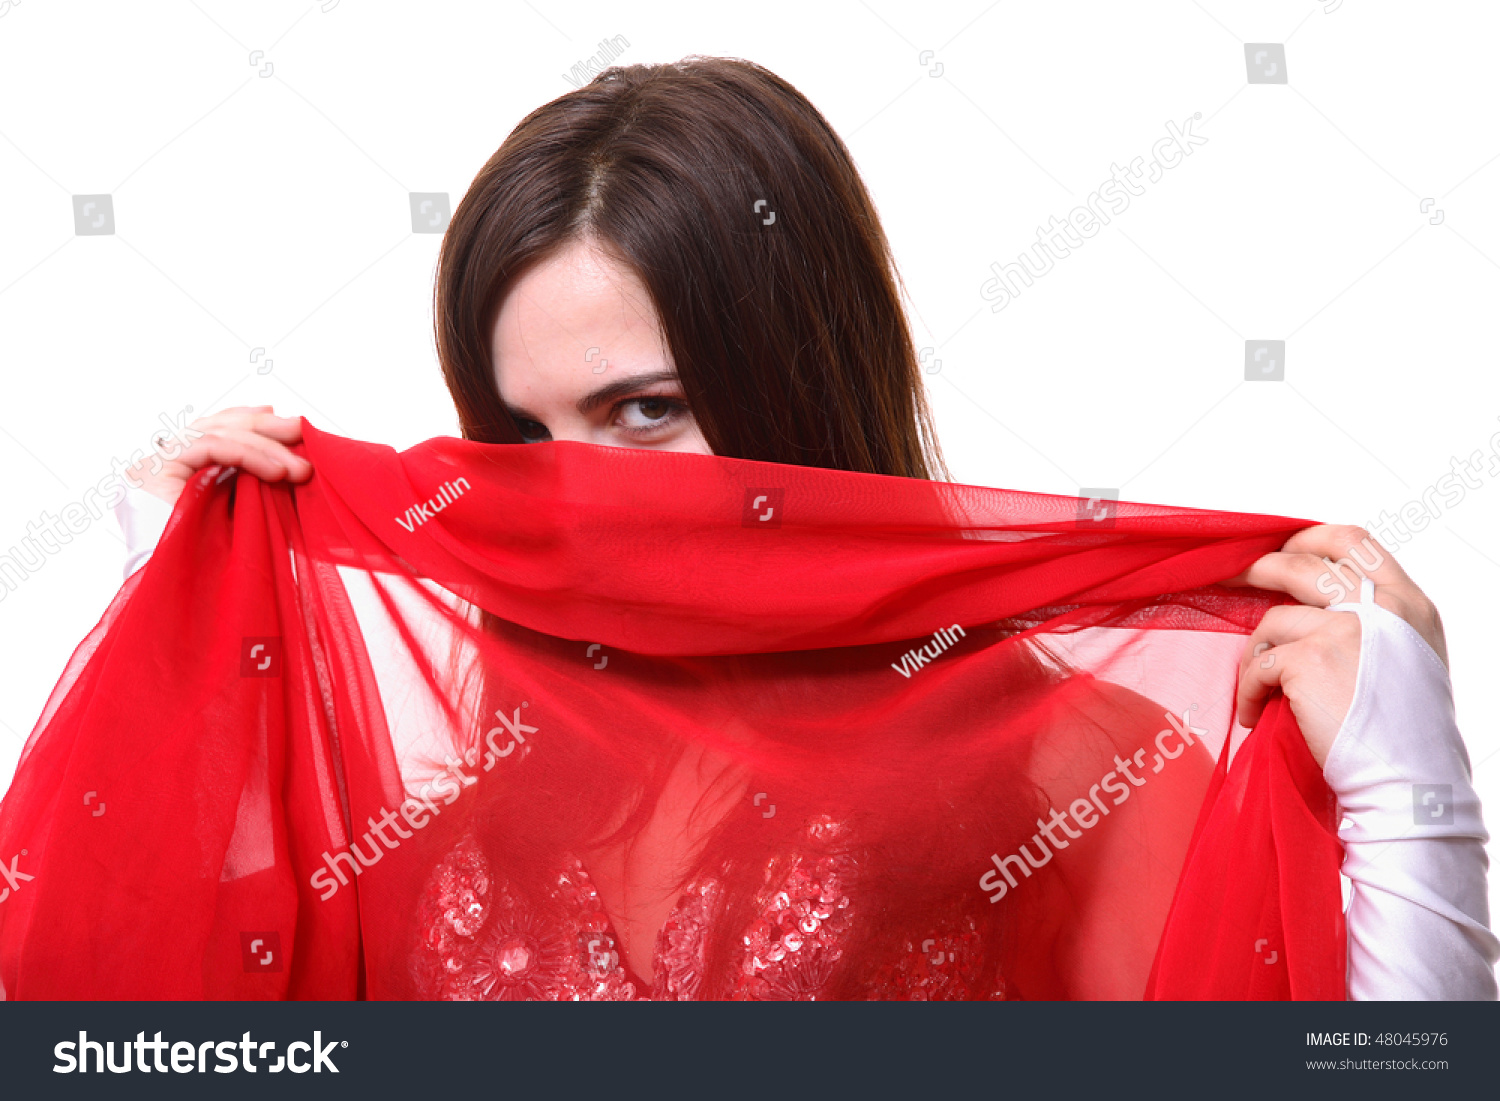 The Red Scarf Girl